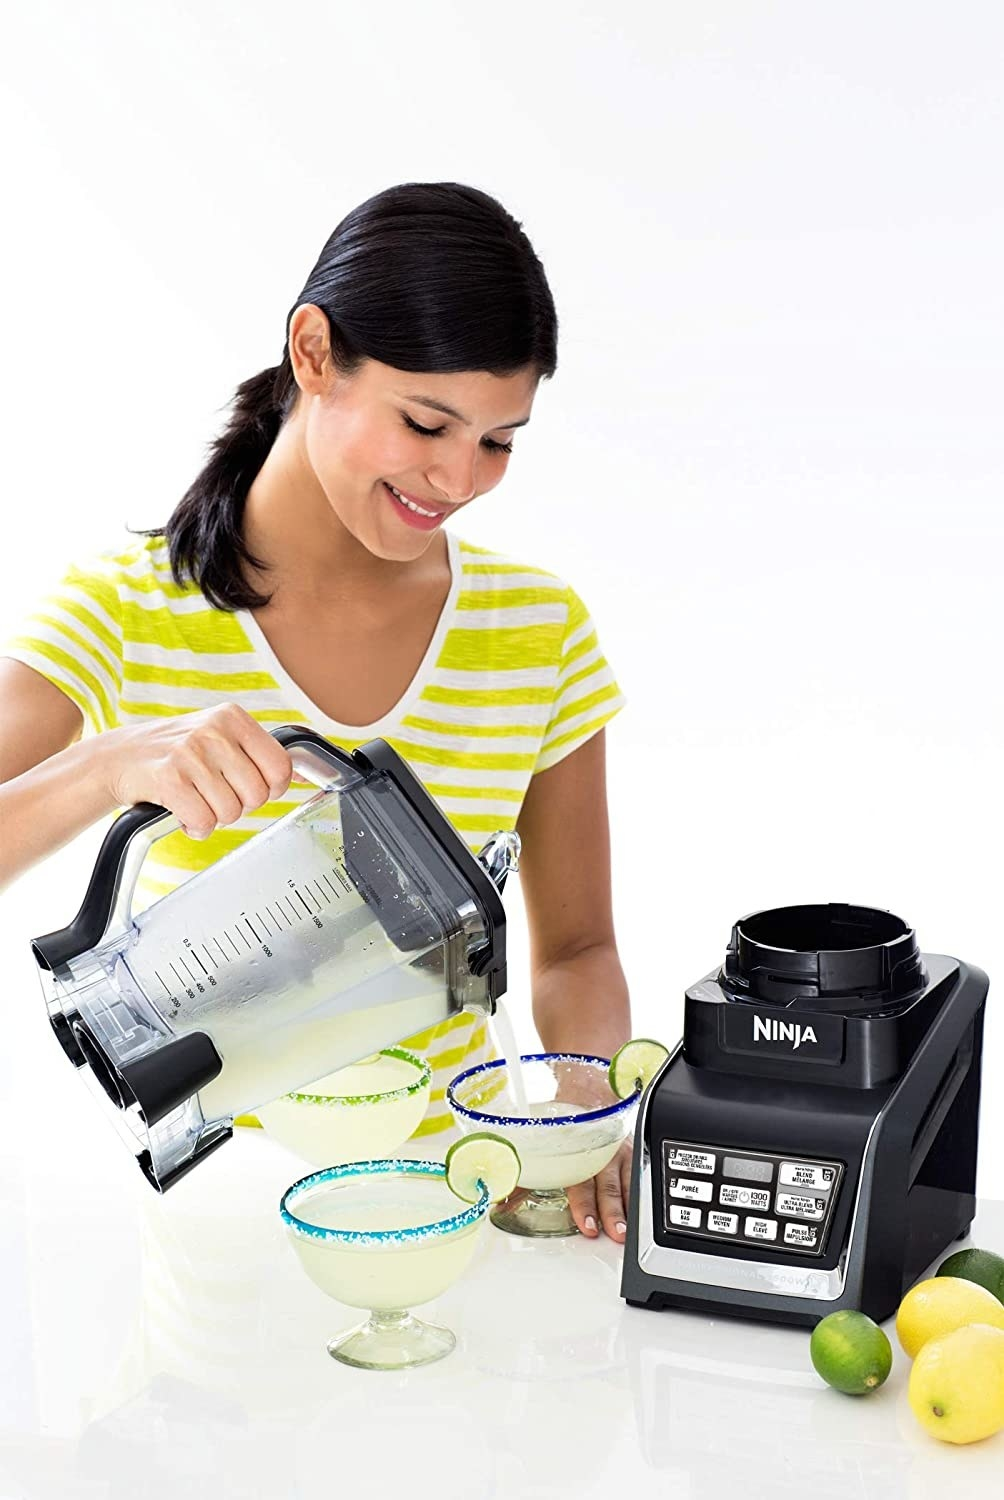 woman pouring out margaritas with the Ninja blender